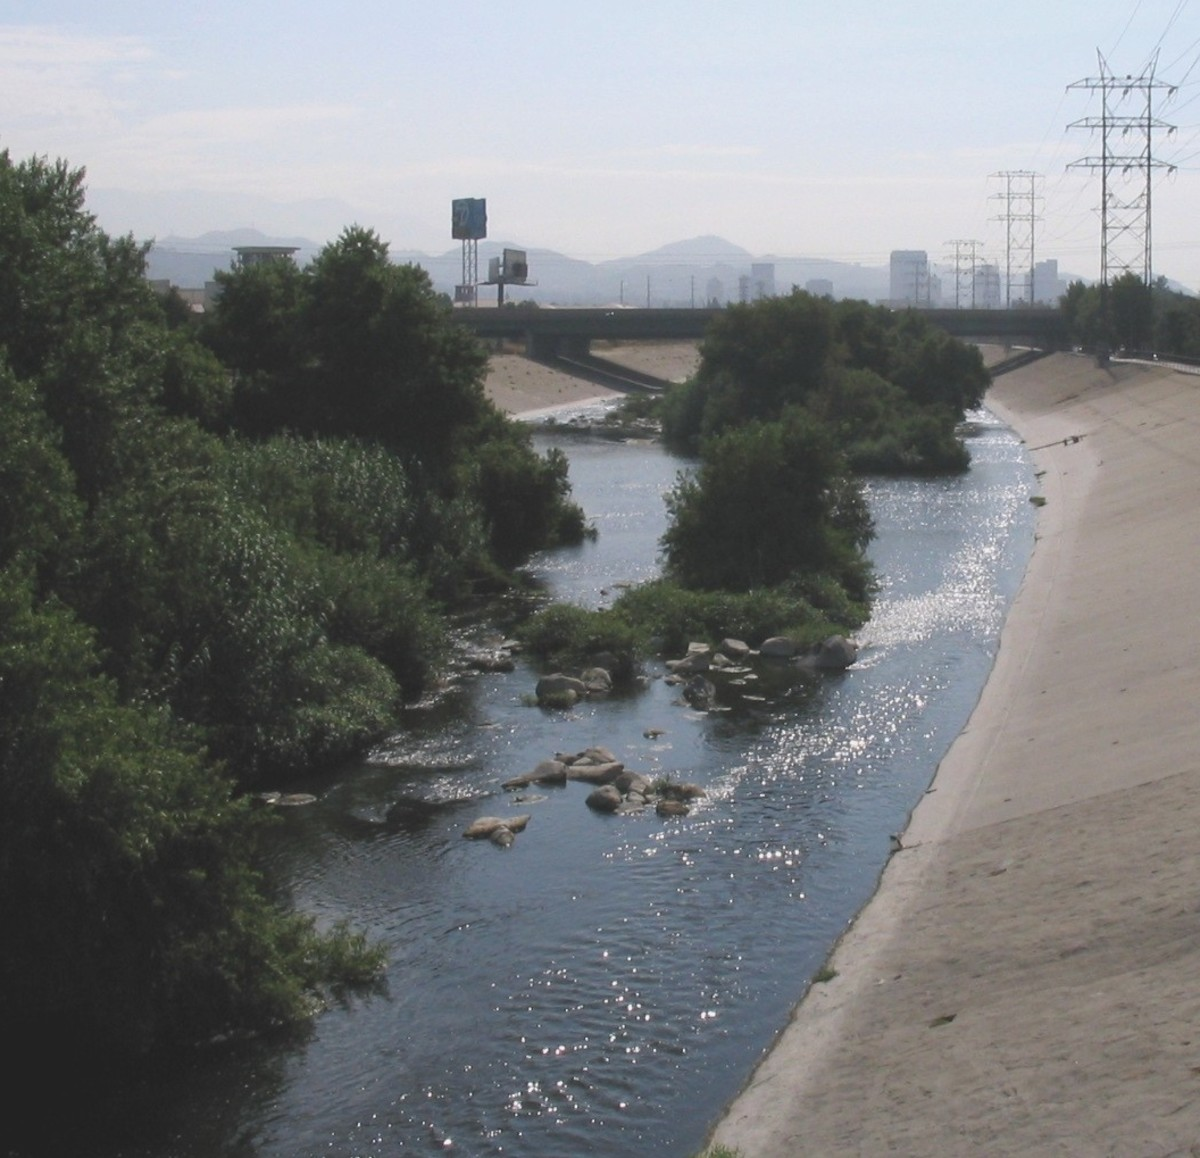 Los Angeles River in Glendale, Ca.